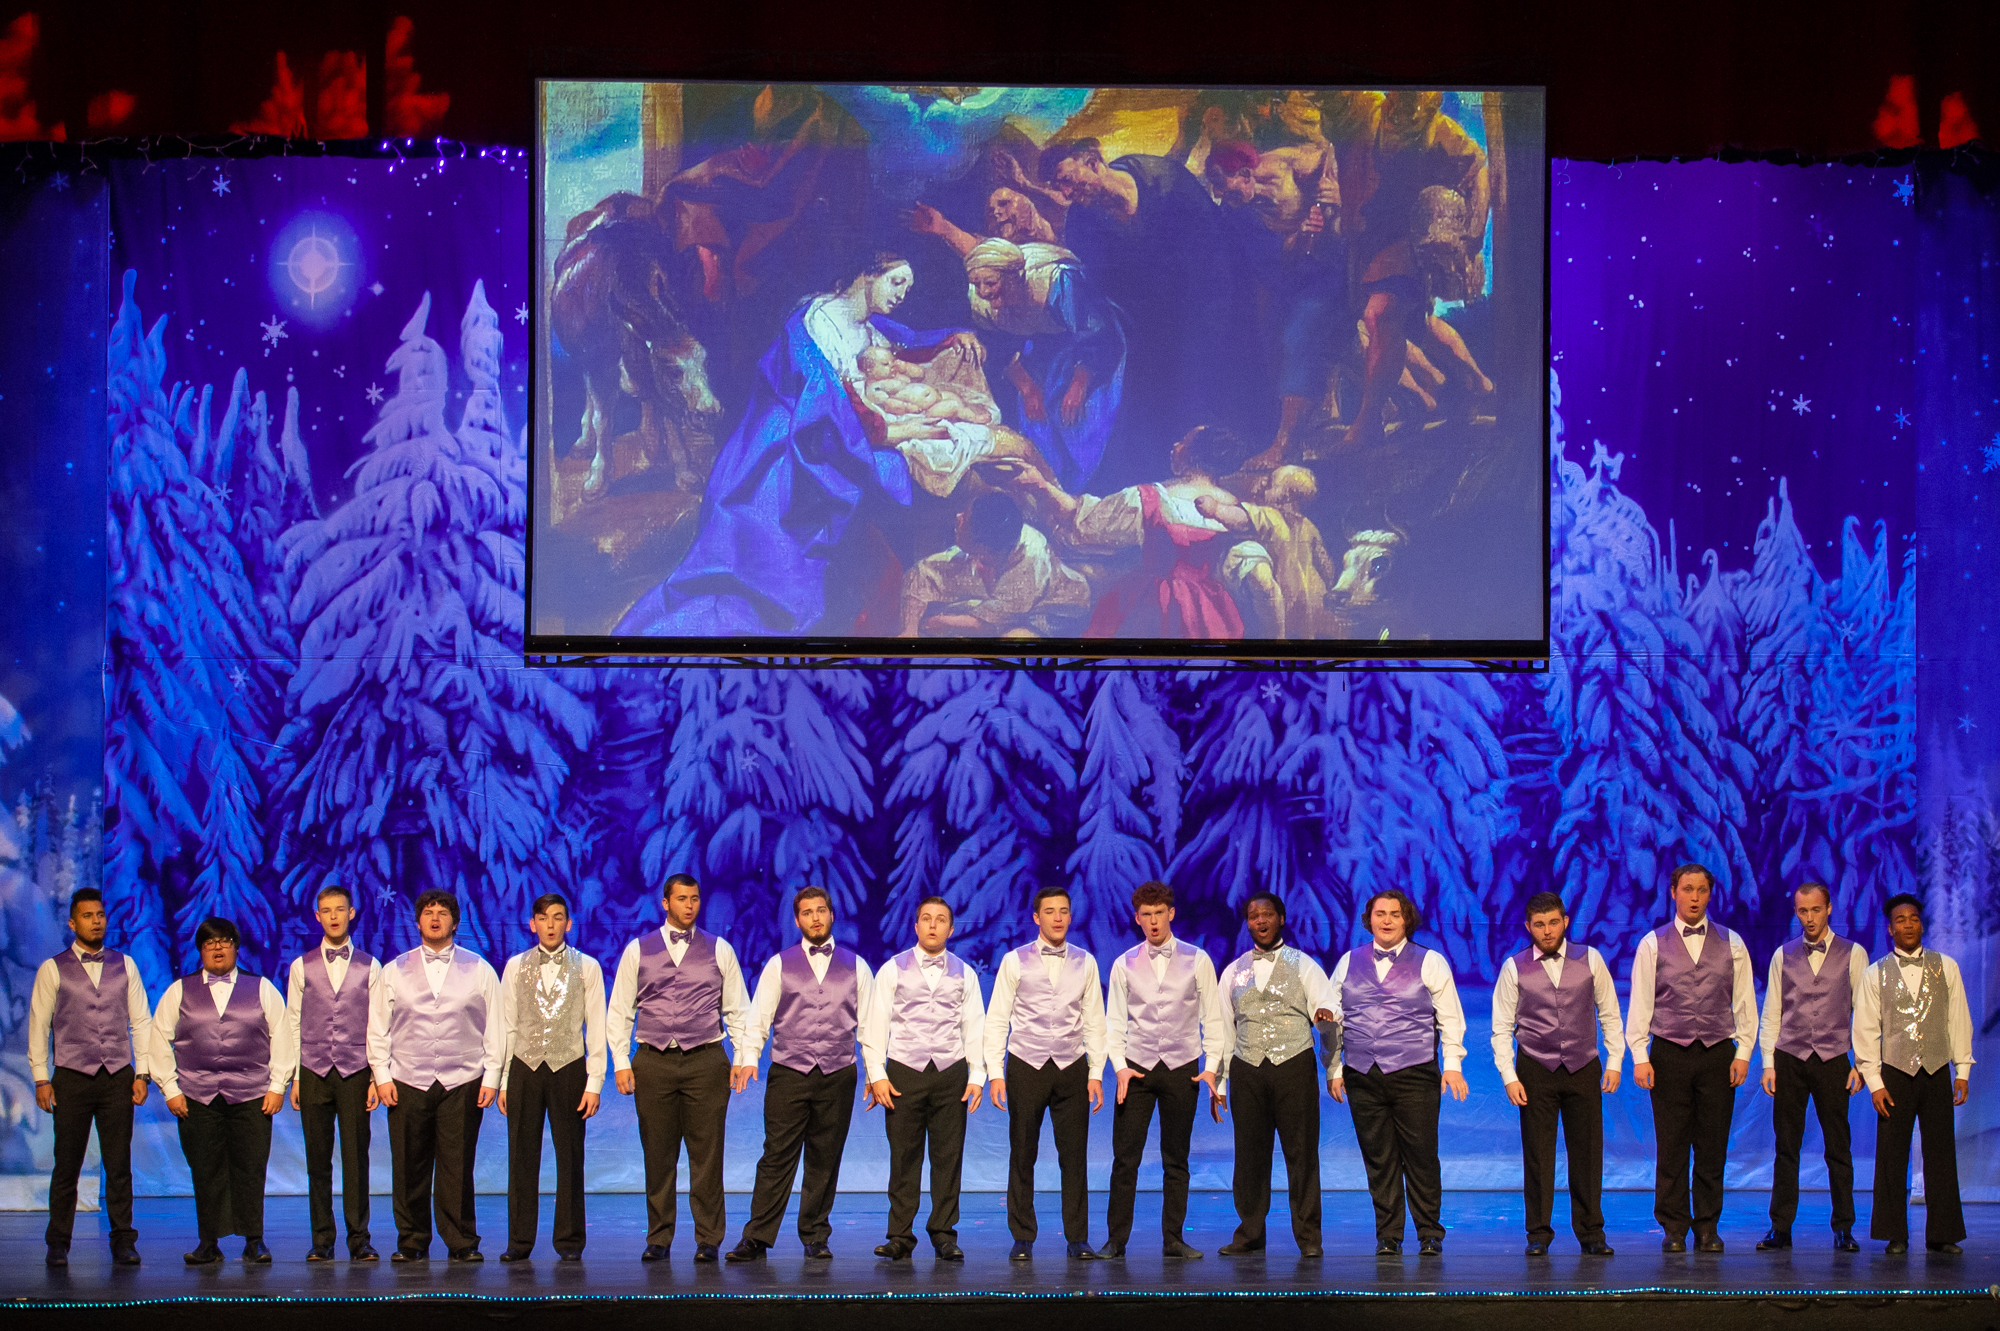 31st Annual Christmas Gala to be performed in Natchitoches